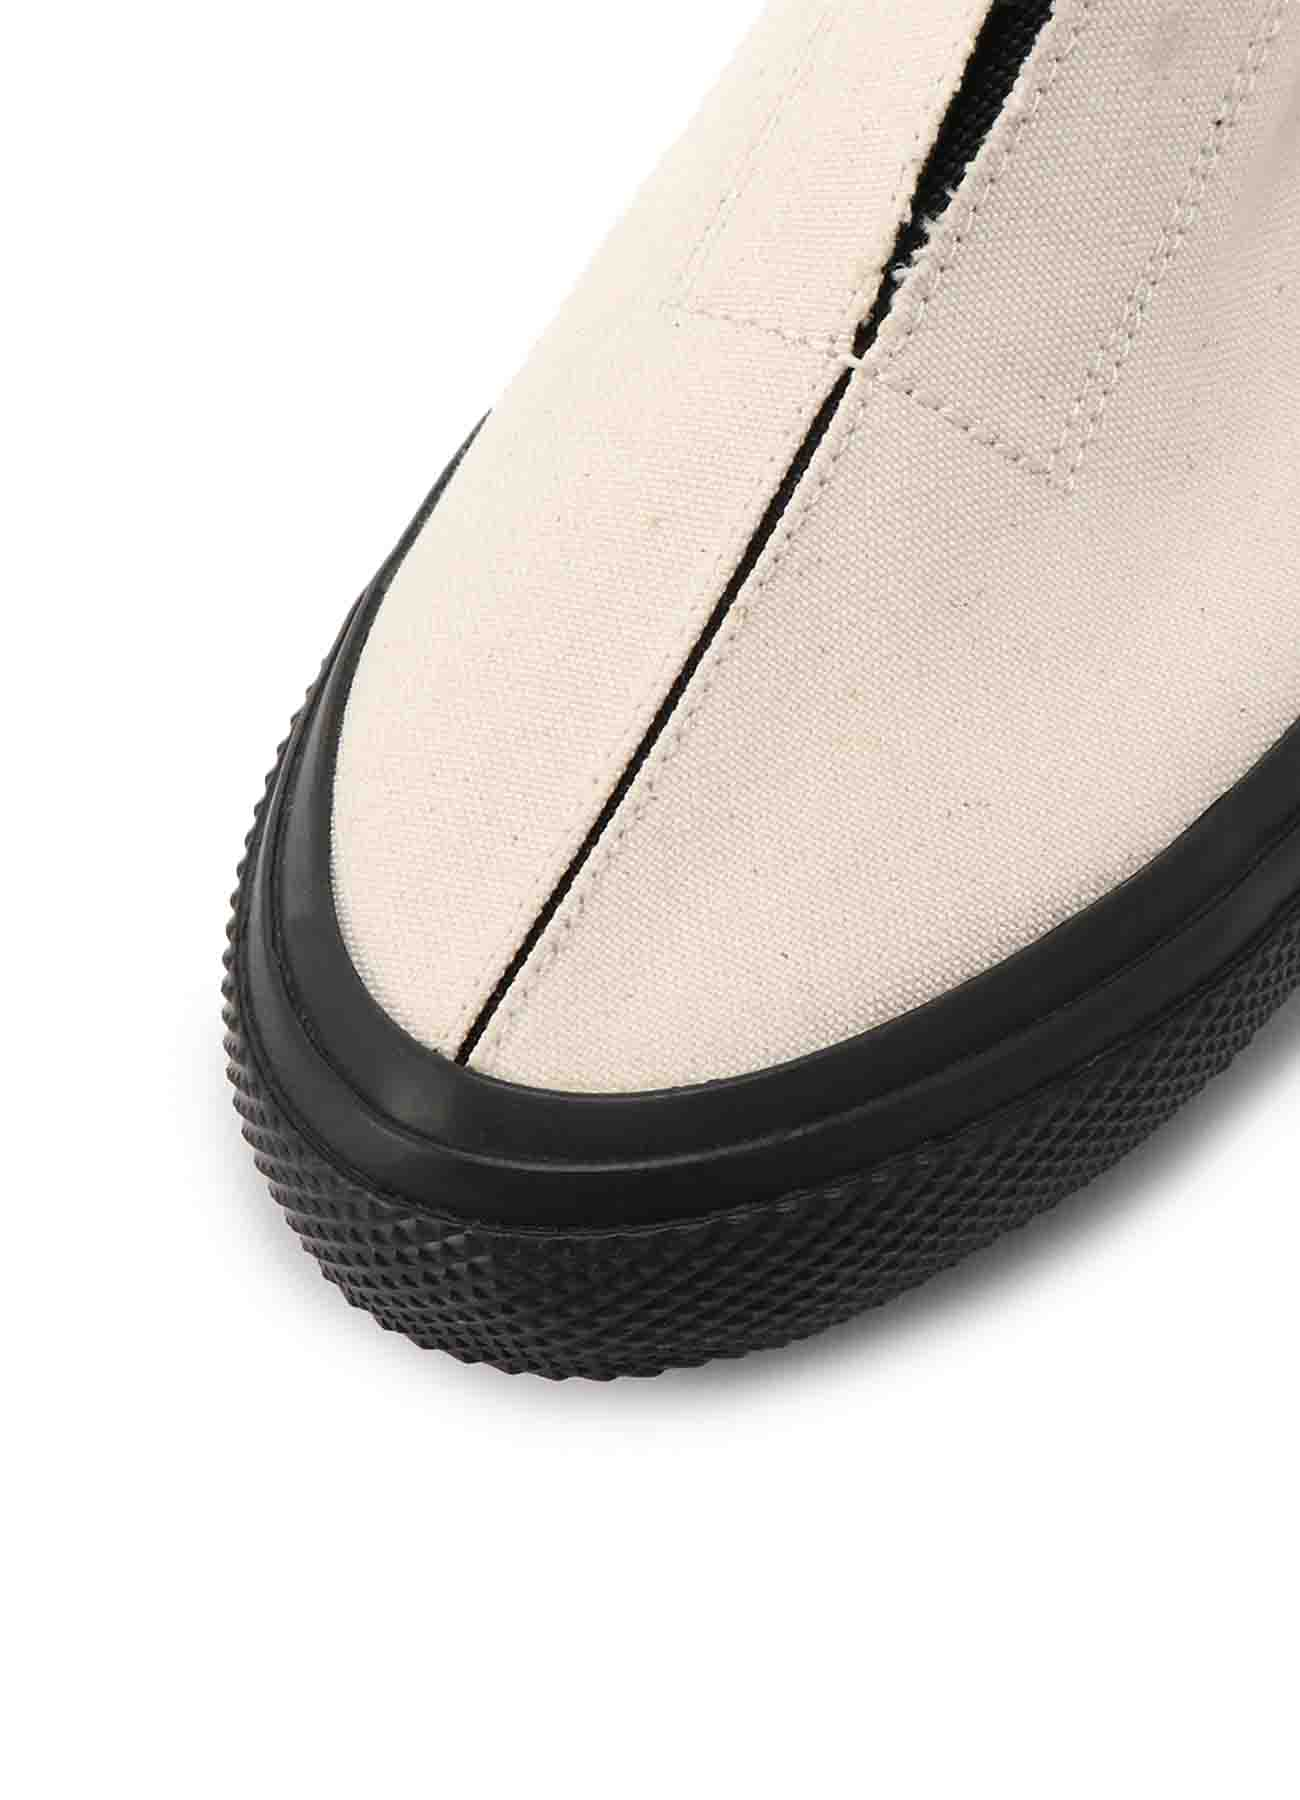 NO. 9 C/CANVAS GORE SLIP-ON SNEAKERS